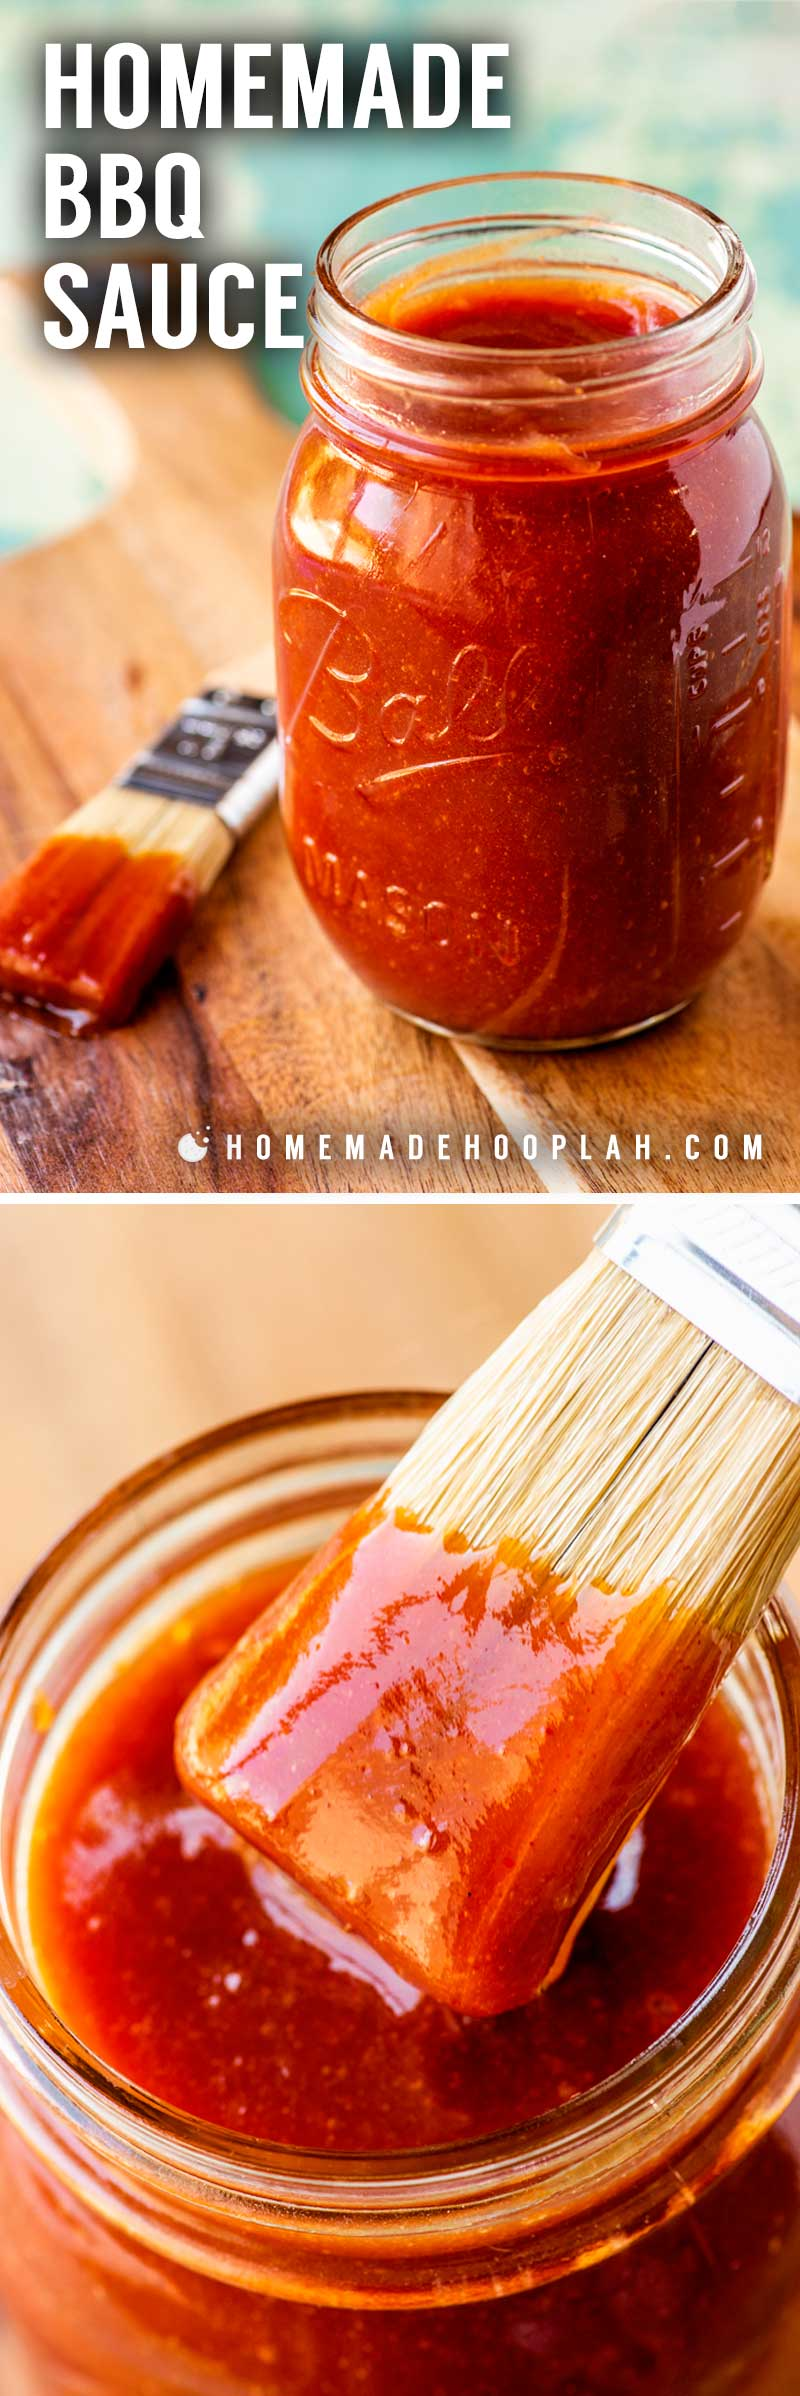 Homemade BBQ Sauce! Make classic BBQ sauce at home in less than 5 minutes by taking common sauces and spices and whipping them up in a food processor (so no cooking required!) It's a must-have recipe for countless crowd-pleasing dishes! | HomemadeHooplah.com